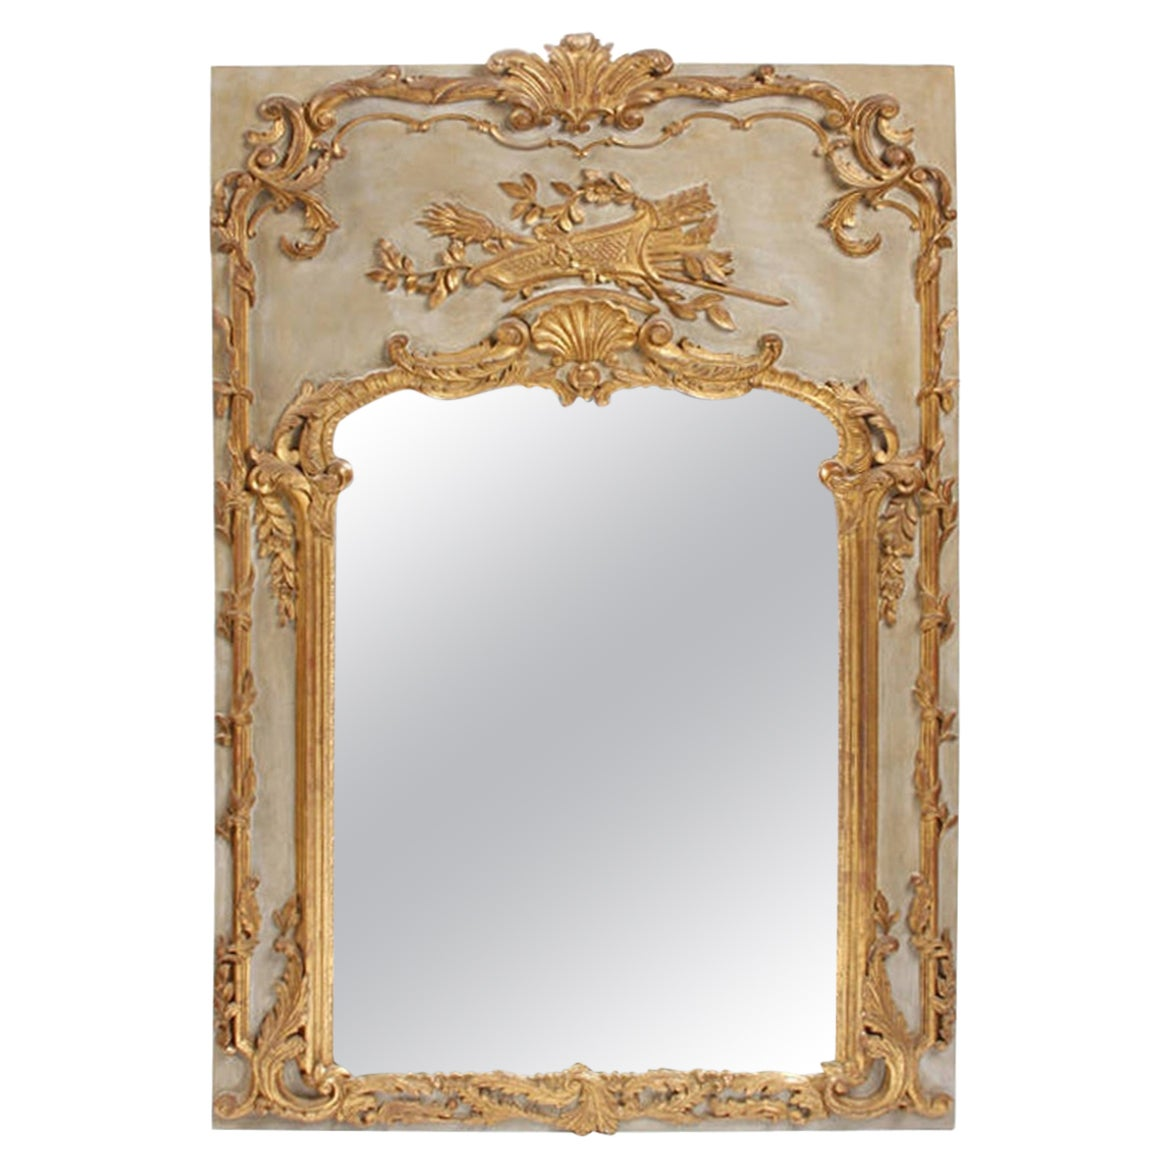 French Louis XV Style Parcel-Gilt Boiserie Mirror, 19th Century